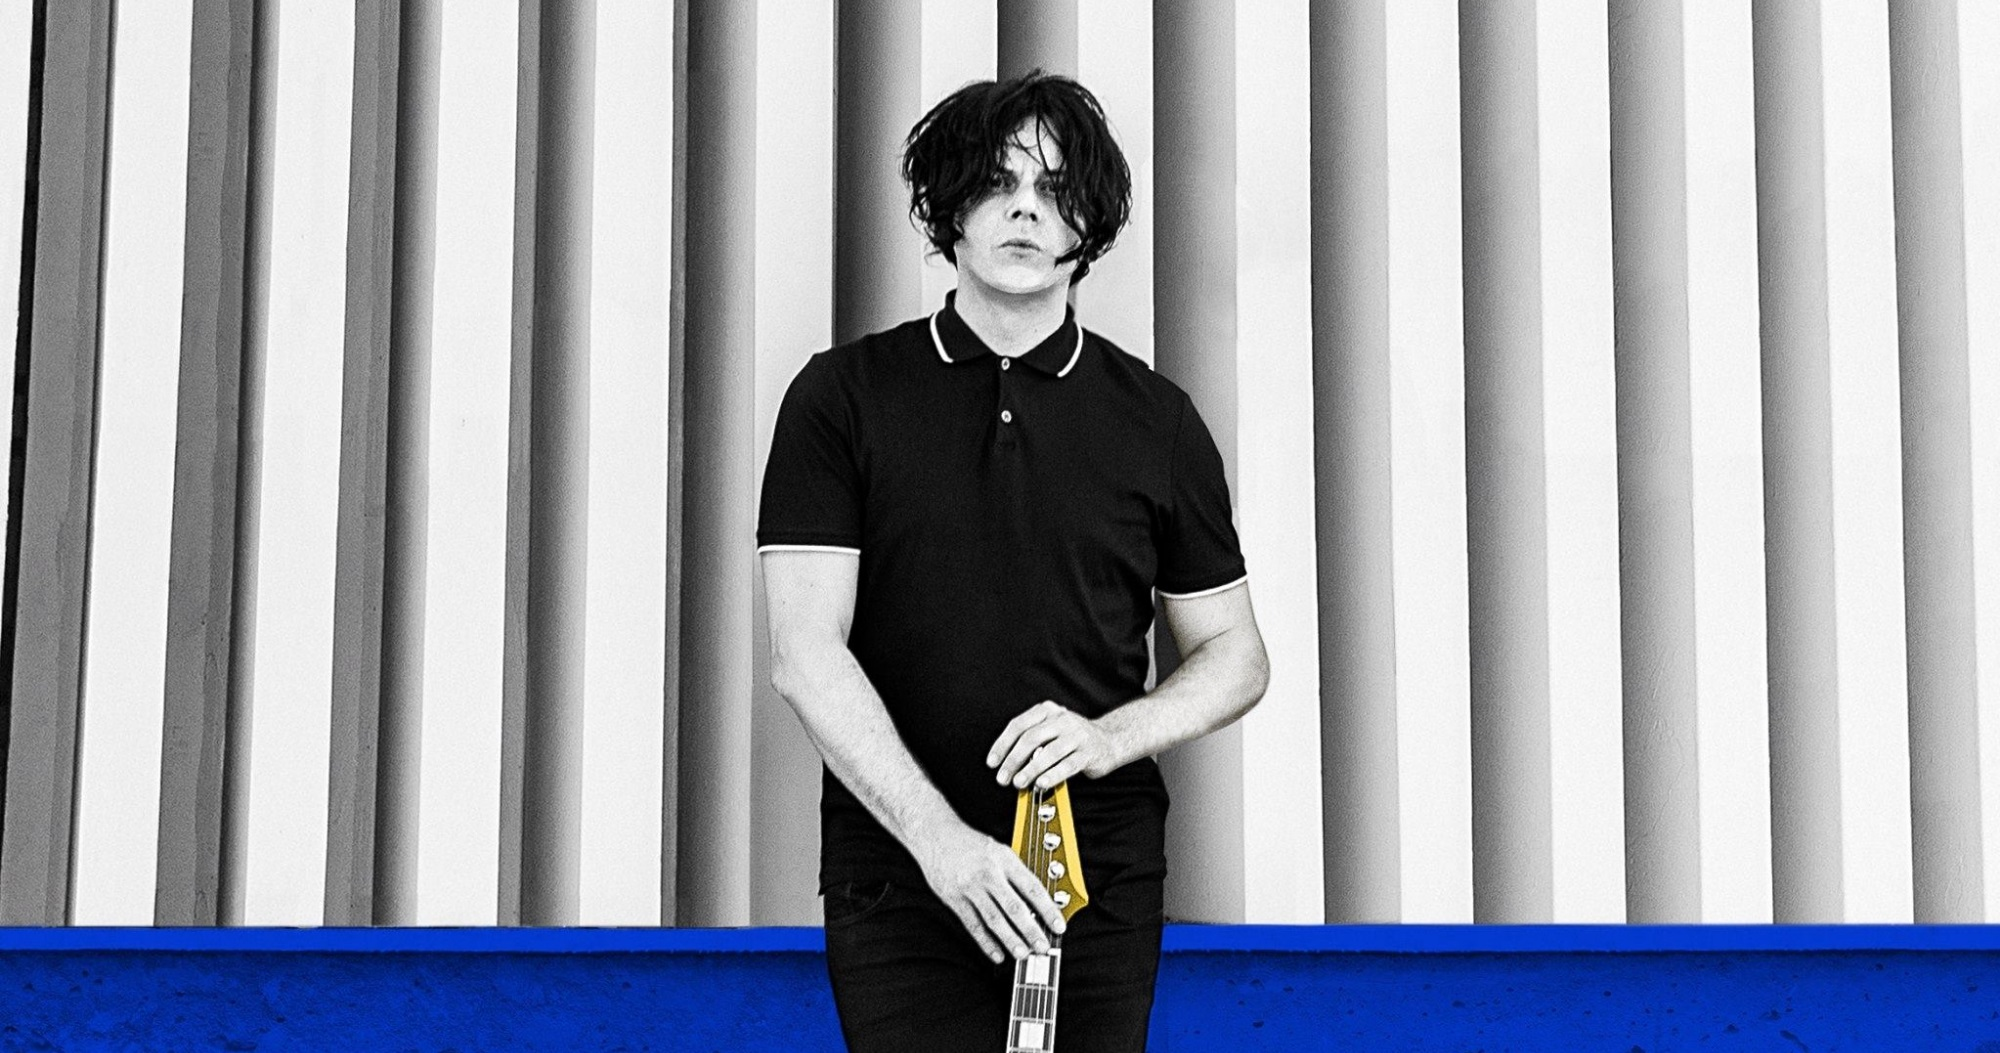 jack-white-2018-press-crop